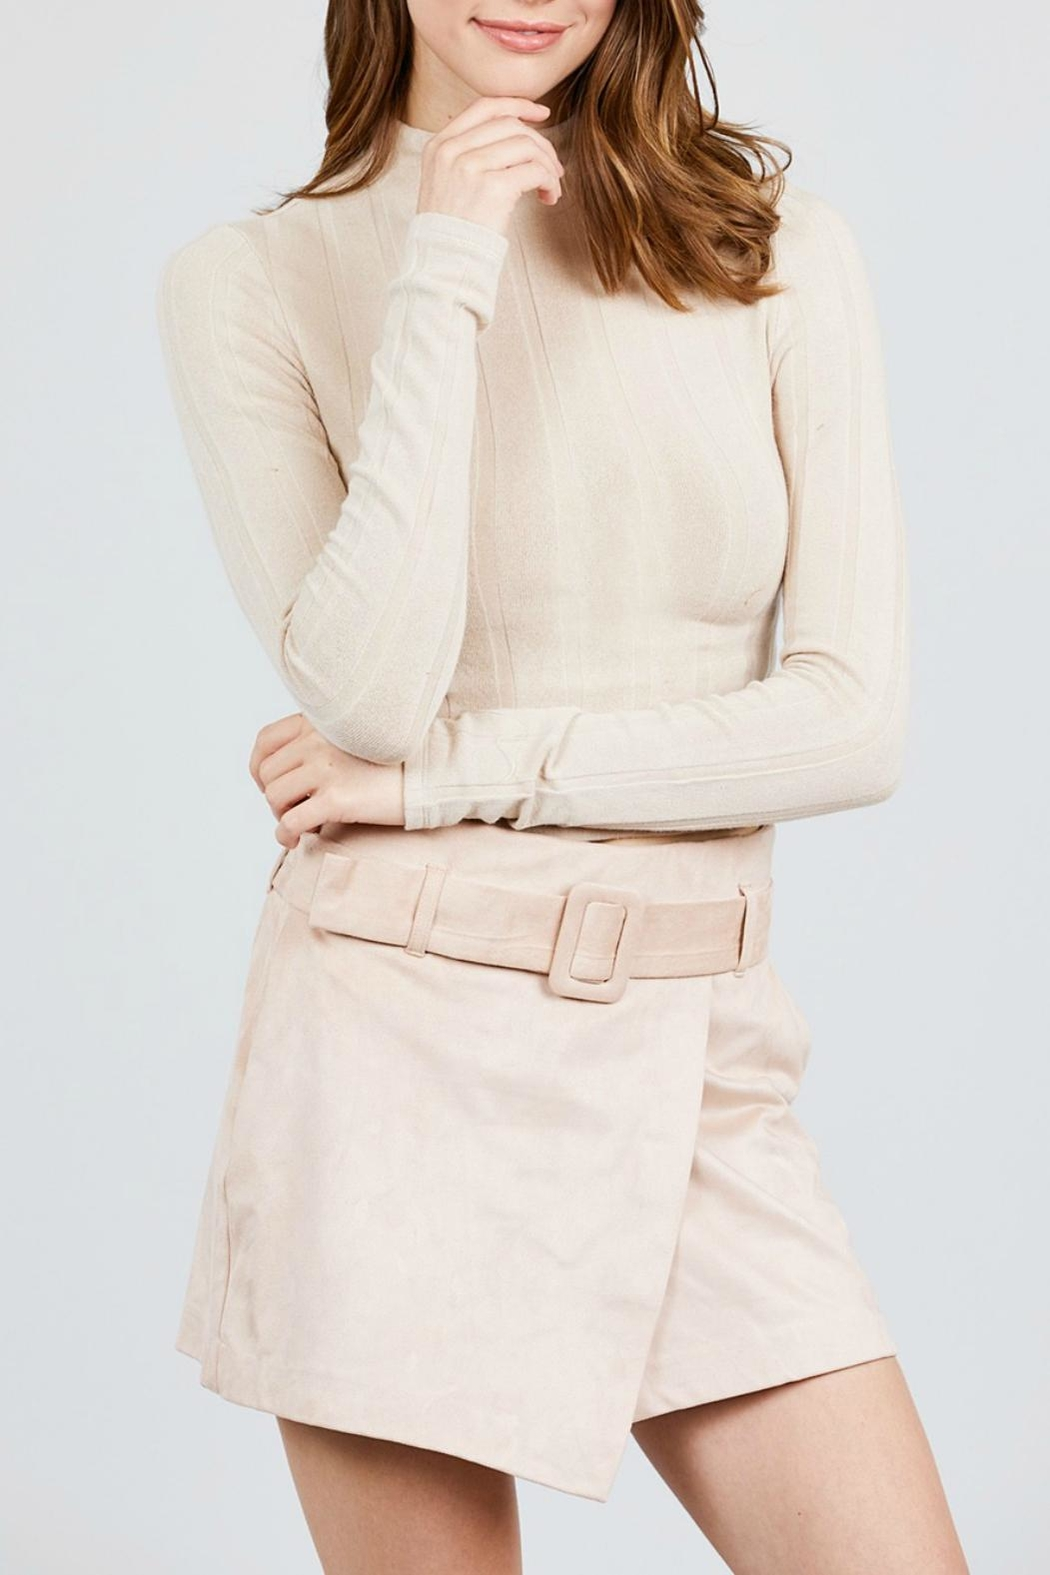 Pretty Little Things Mockneck Crop Top - Front Cropped Image